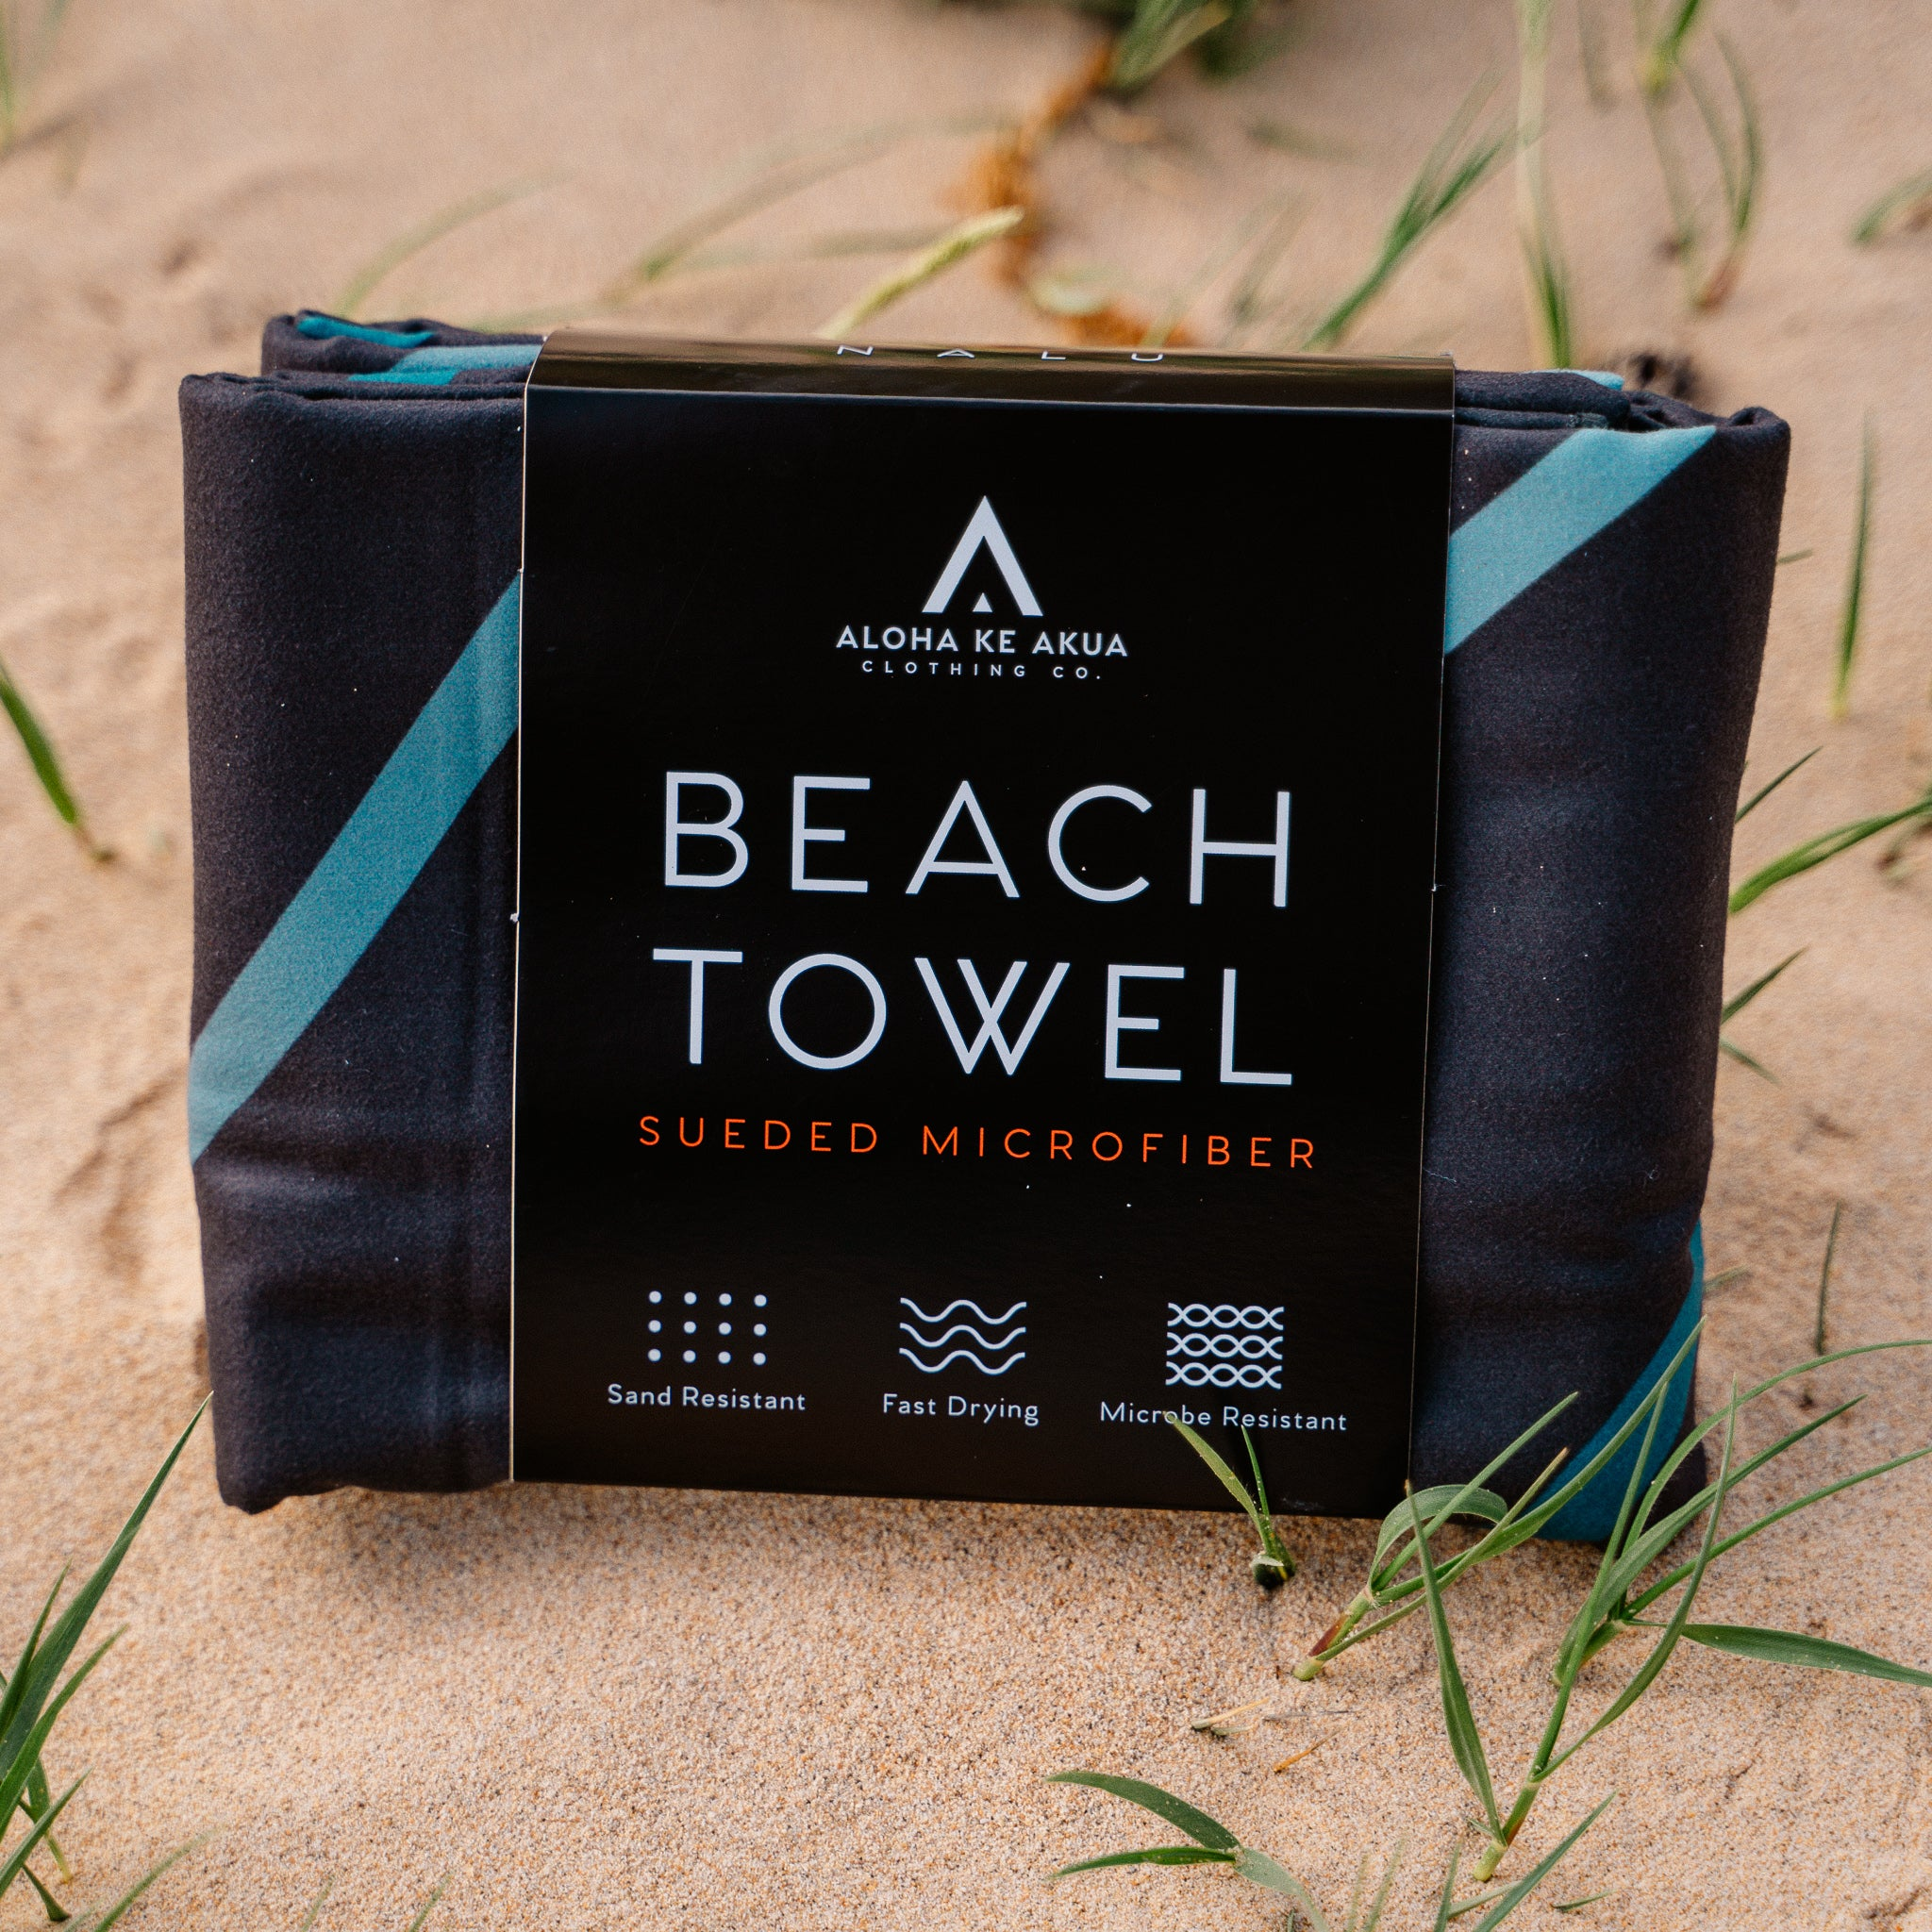 Nalu Beach Towel Packaging